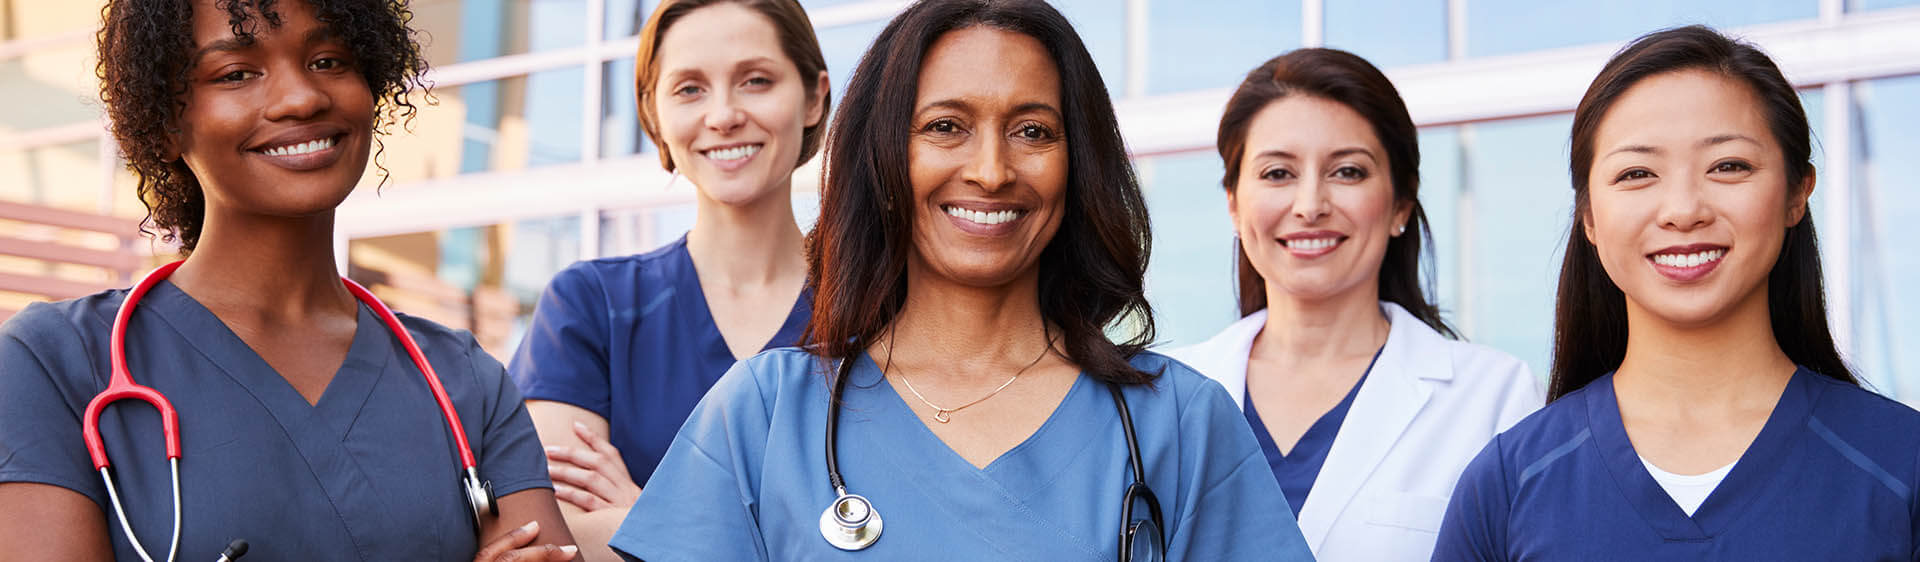 The Bronx Medical Billing Company, Medical Billing Services and Medical Billing Specialist